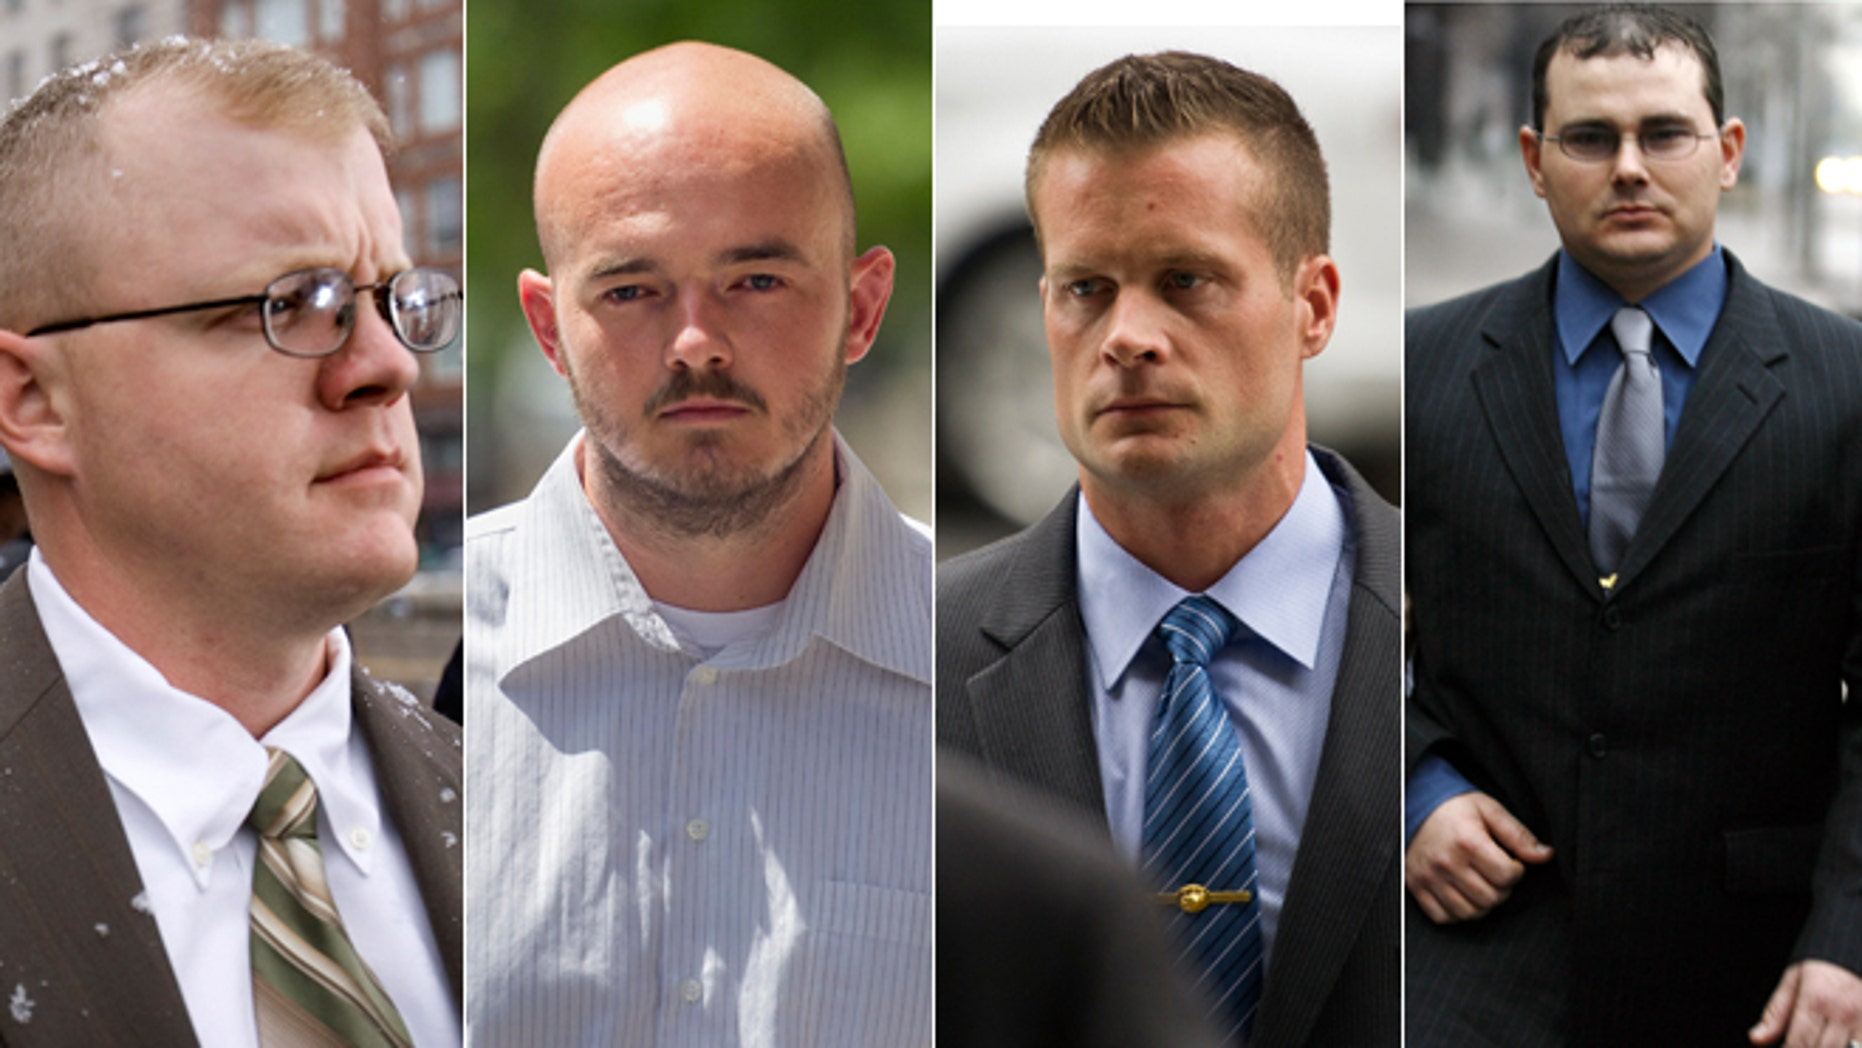 File photos of former Blackwater Worldwide guards Paul Slough (Dec. 8, 2008), Nicholas Slatten (June 11, 2014), Evan Liberty (June 11, 2014) and Dustin Heard (Jan. 6, 2009).